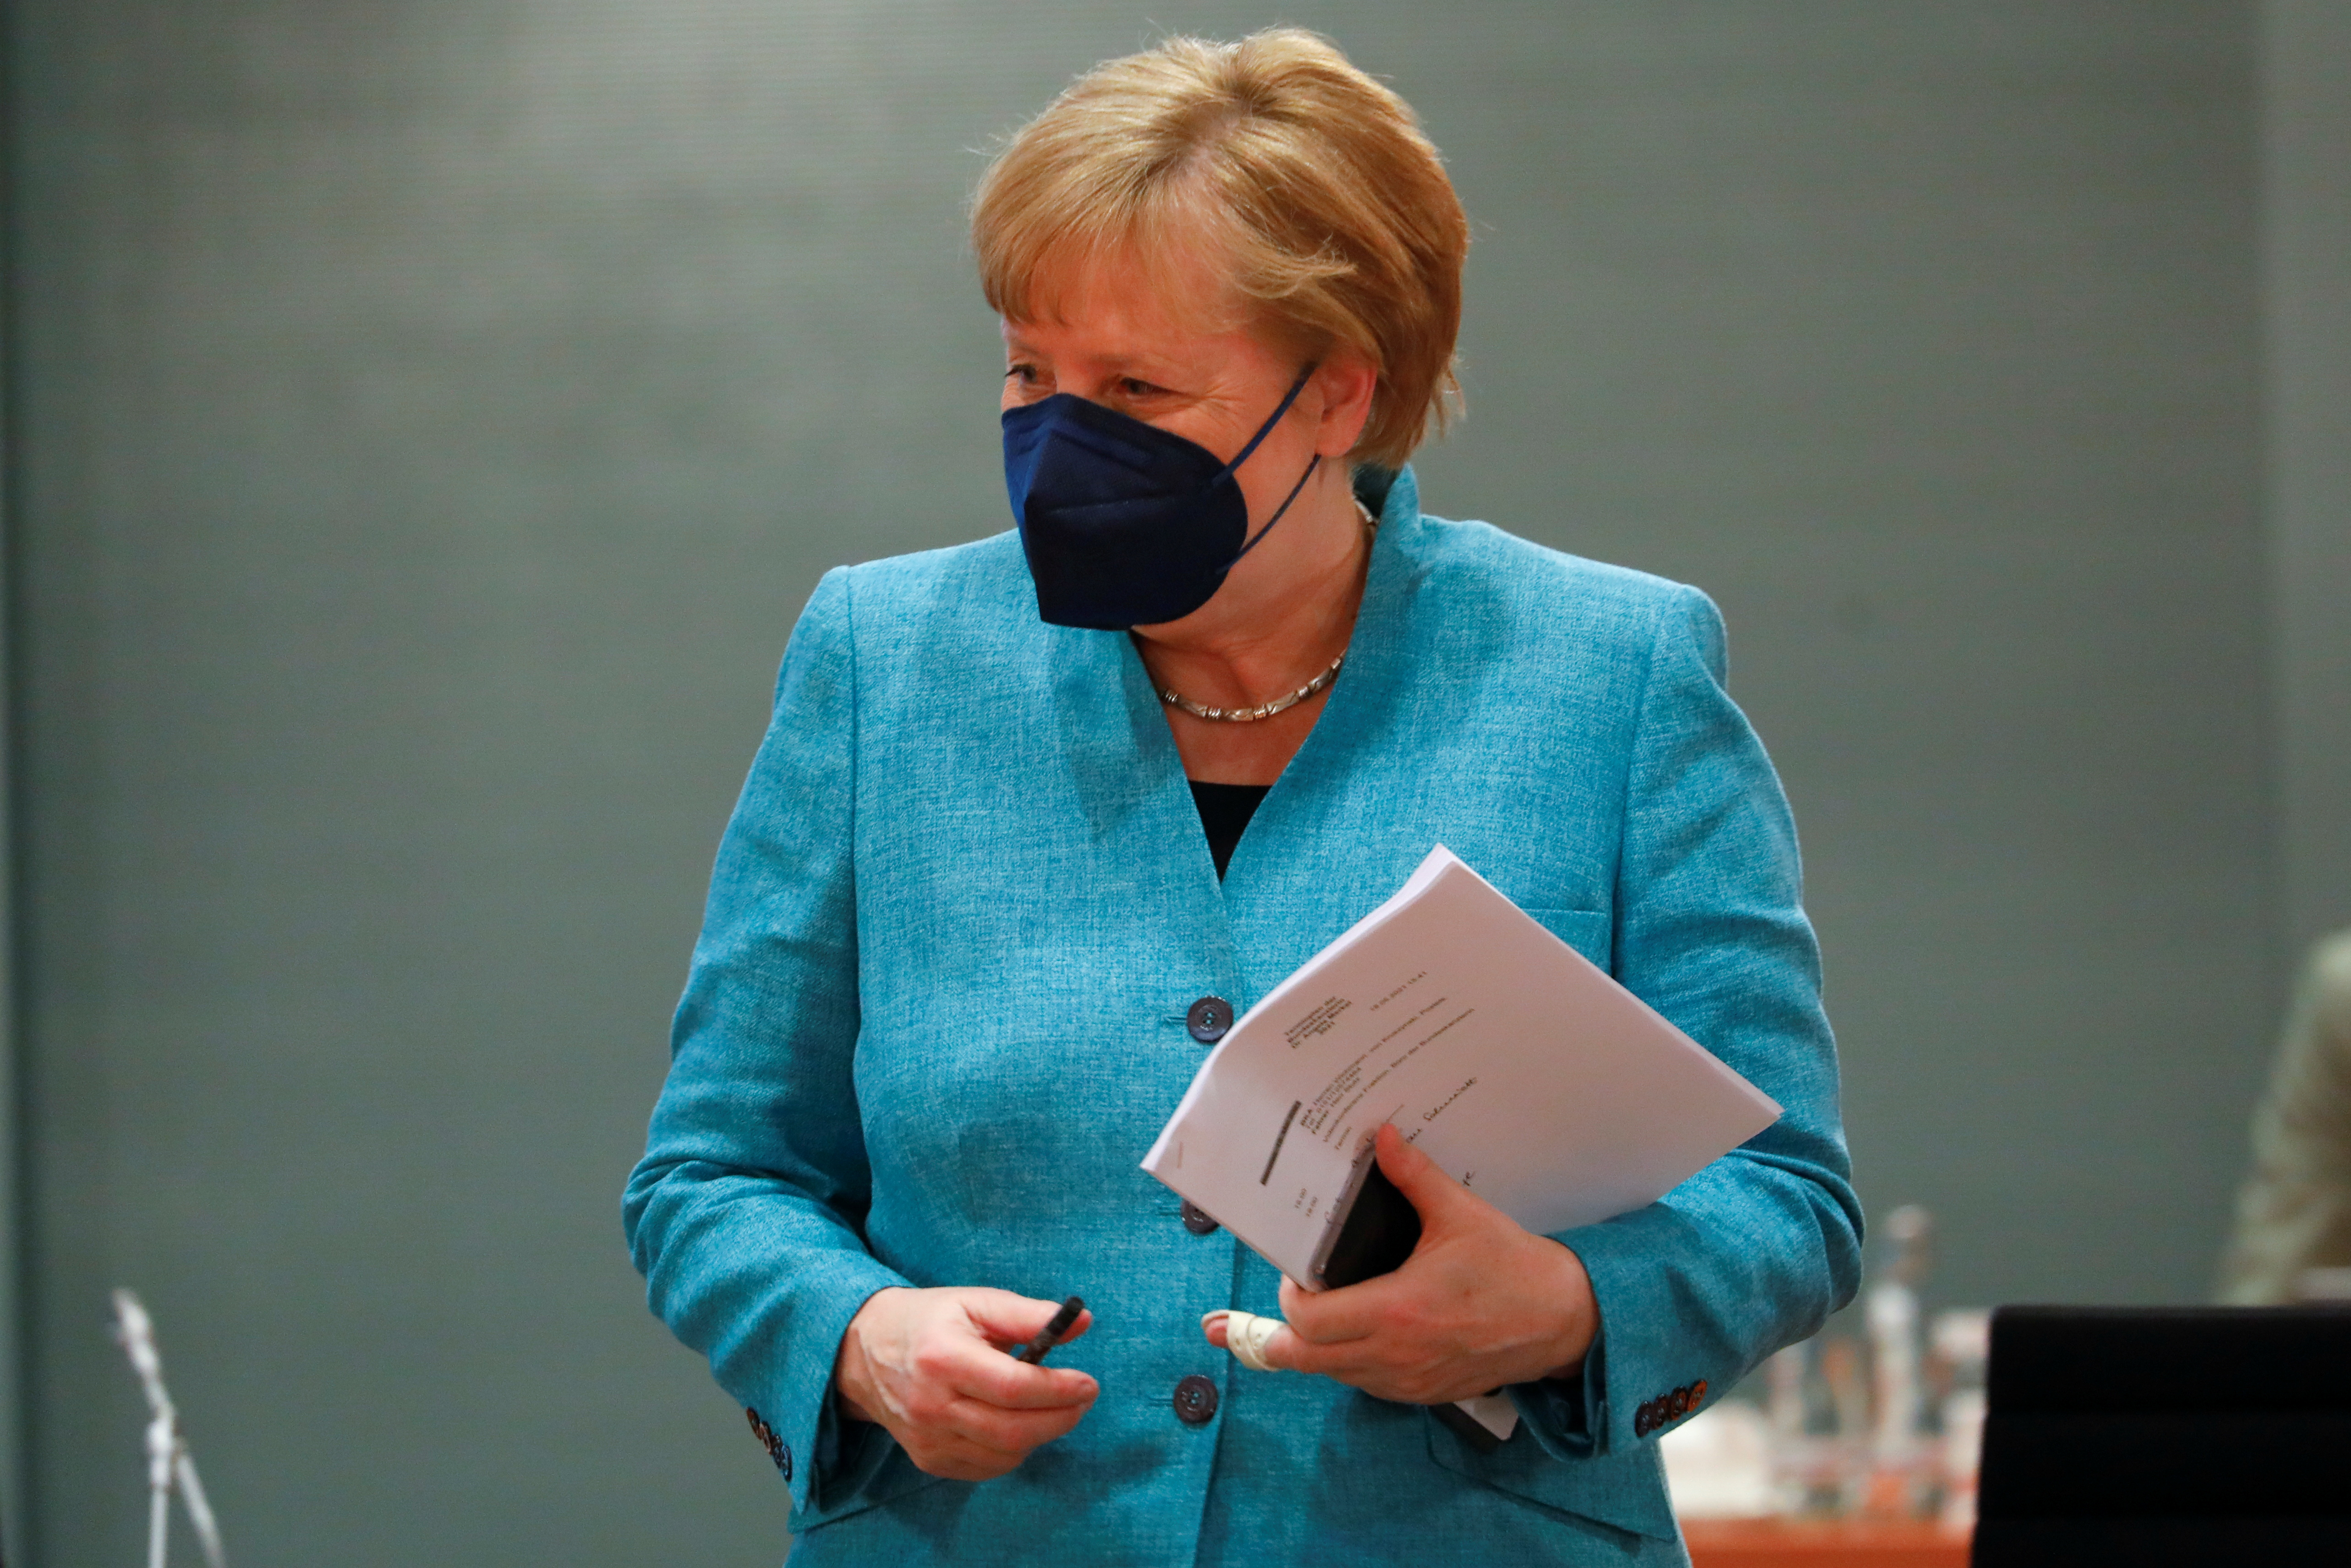 German Chancellor Angela Merkel arrives for the weekly cabinet meeting at the Chancellery in Berlin, Germany, May 19, 2021. REUTERS/Michele Tantussi/Pool